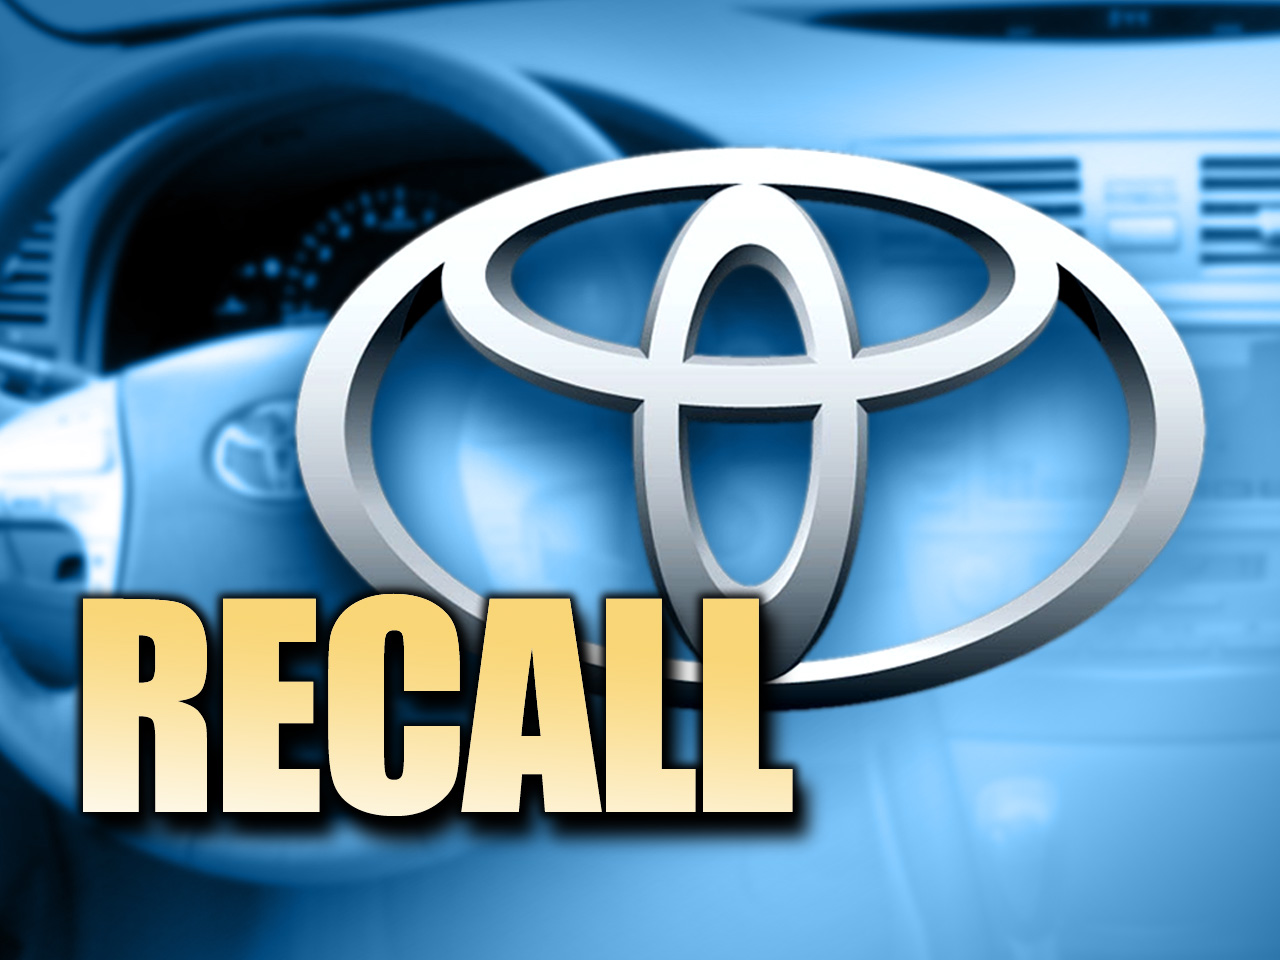 Toyota Recalls Over 6 Million Cars Globally